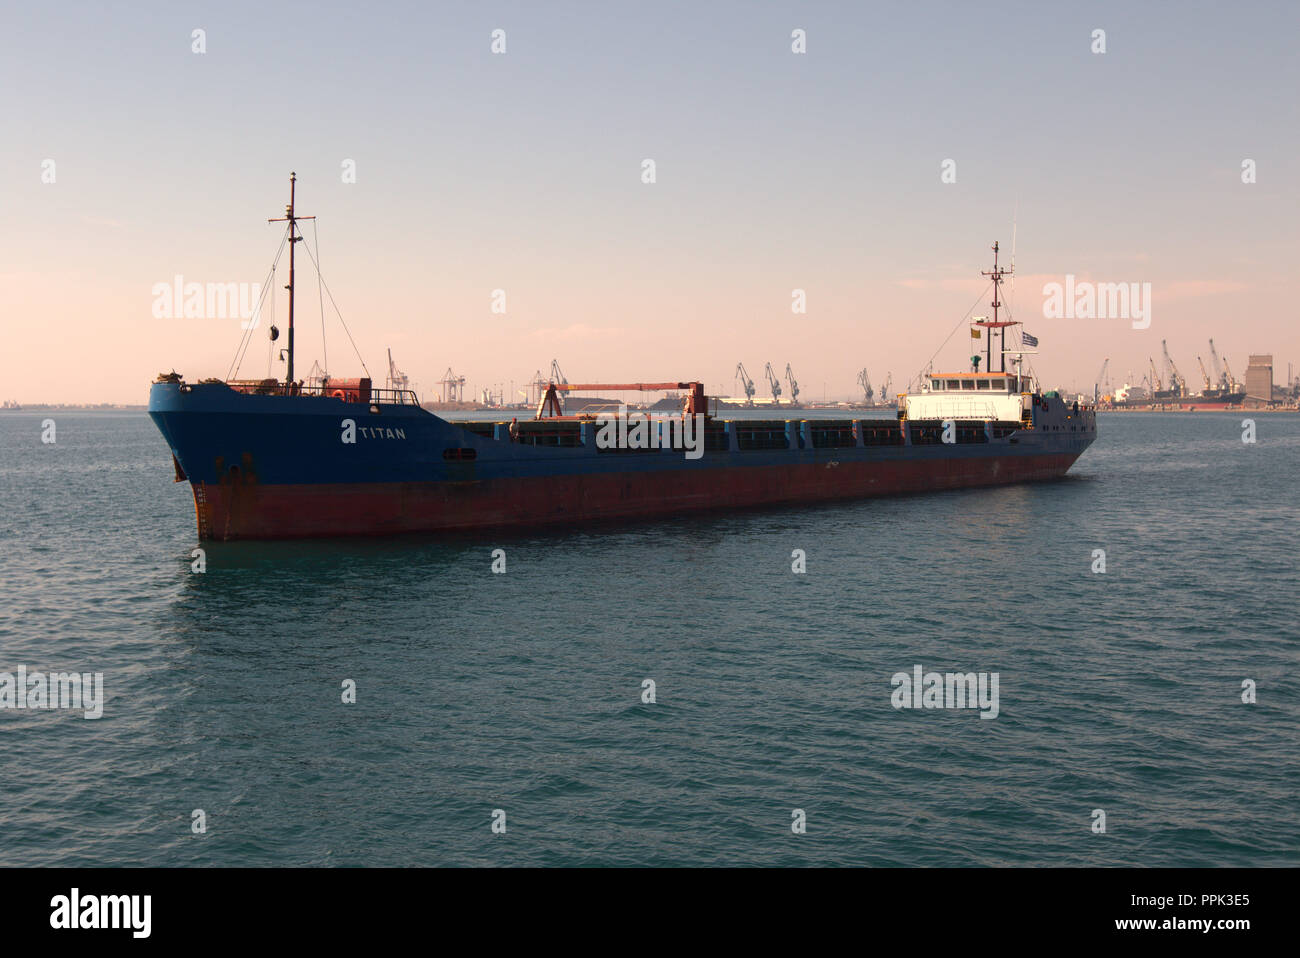 CROWN II chemical and oil products tanker at anchor near the port of Thessaloniki, Greece's second largest city. Stock Photo